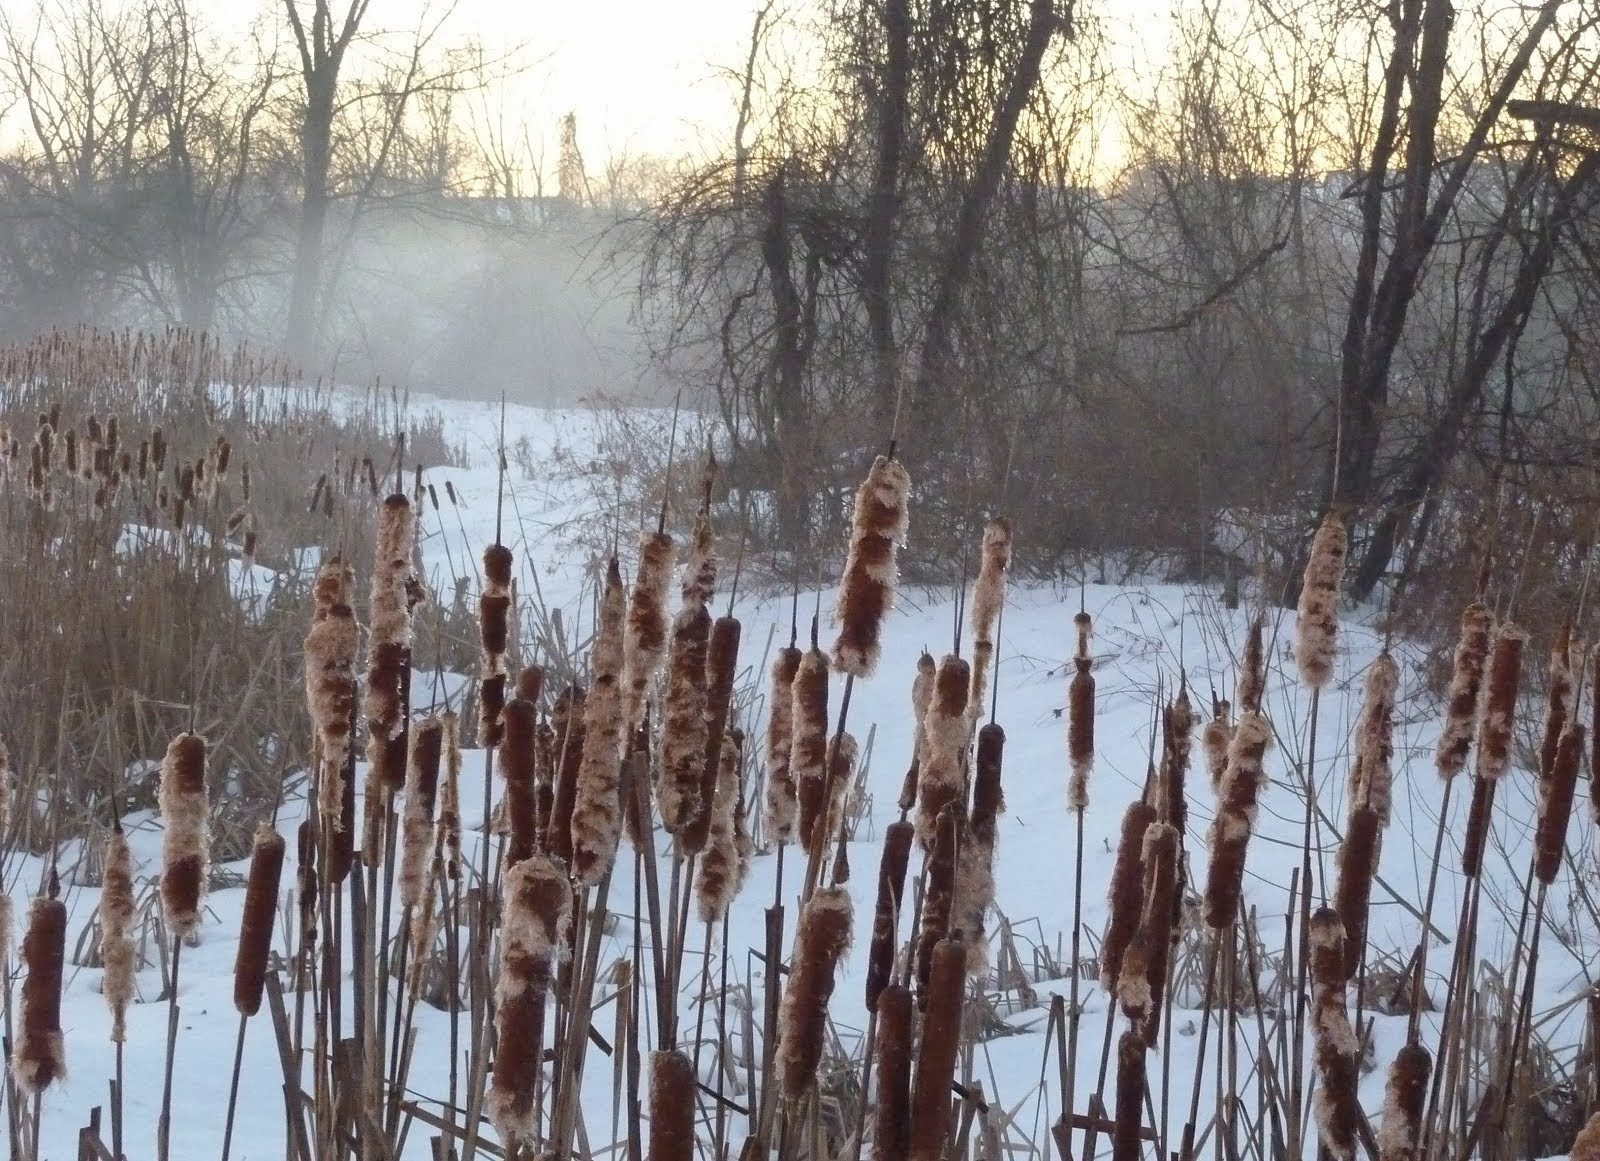 Cattails on the Little Cacoosing